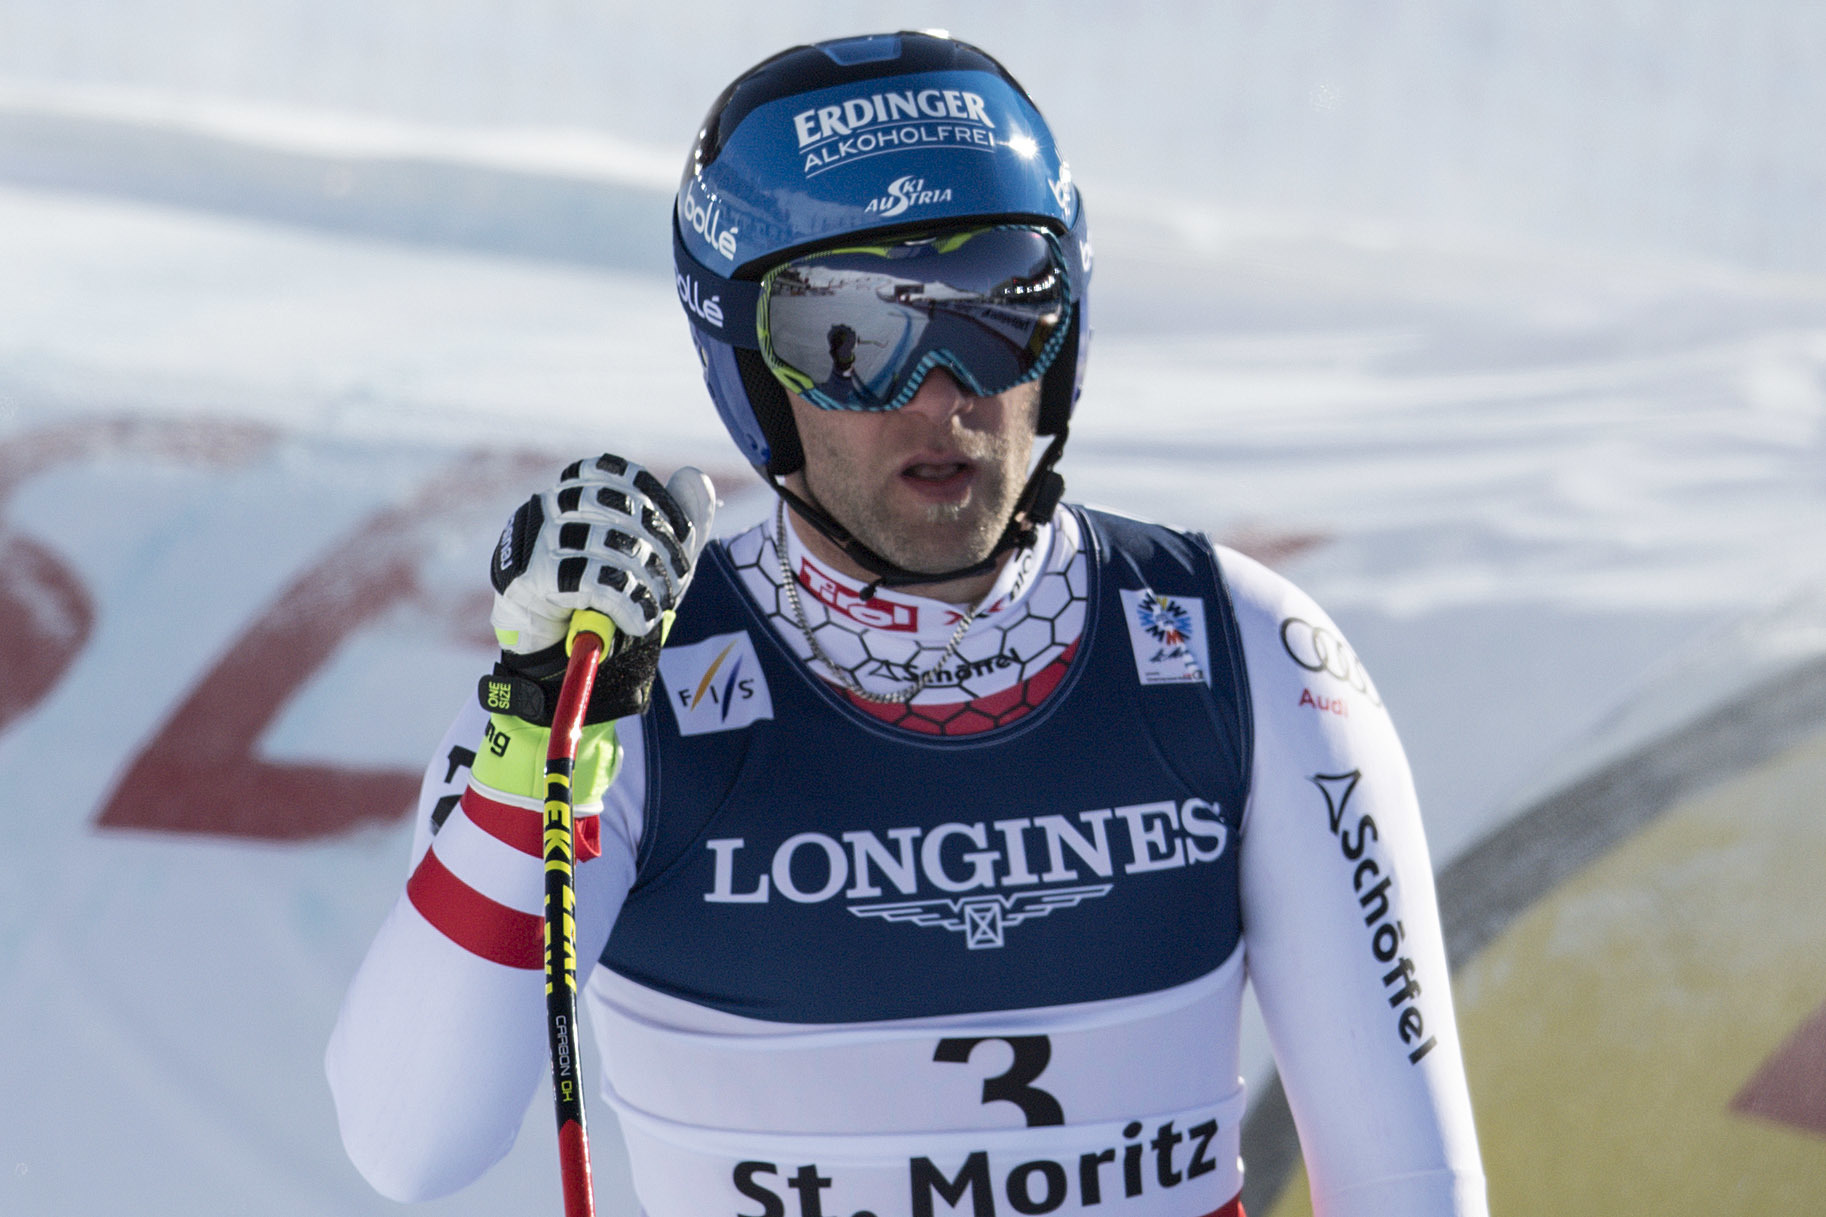 Romed Baumann of Austria stands in the finish area during the men's alpine combined downhill race at the 2017 FIS Alpine Skiing World Championships in St. Moritz, Switzerland, Monday, Feb. 13, 2017. ( (Peter Schneider/Keystone via AP)